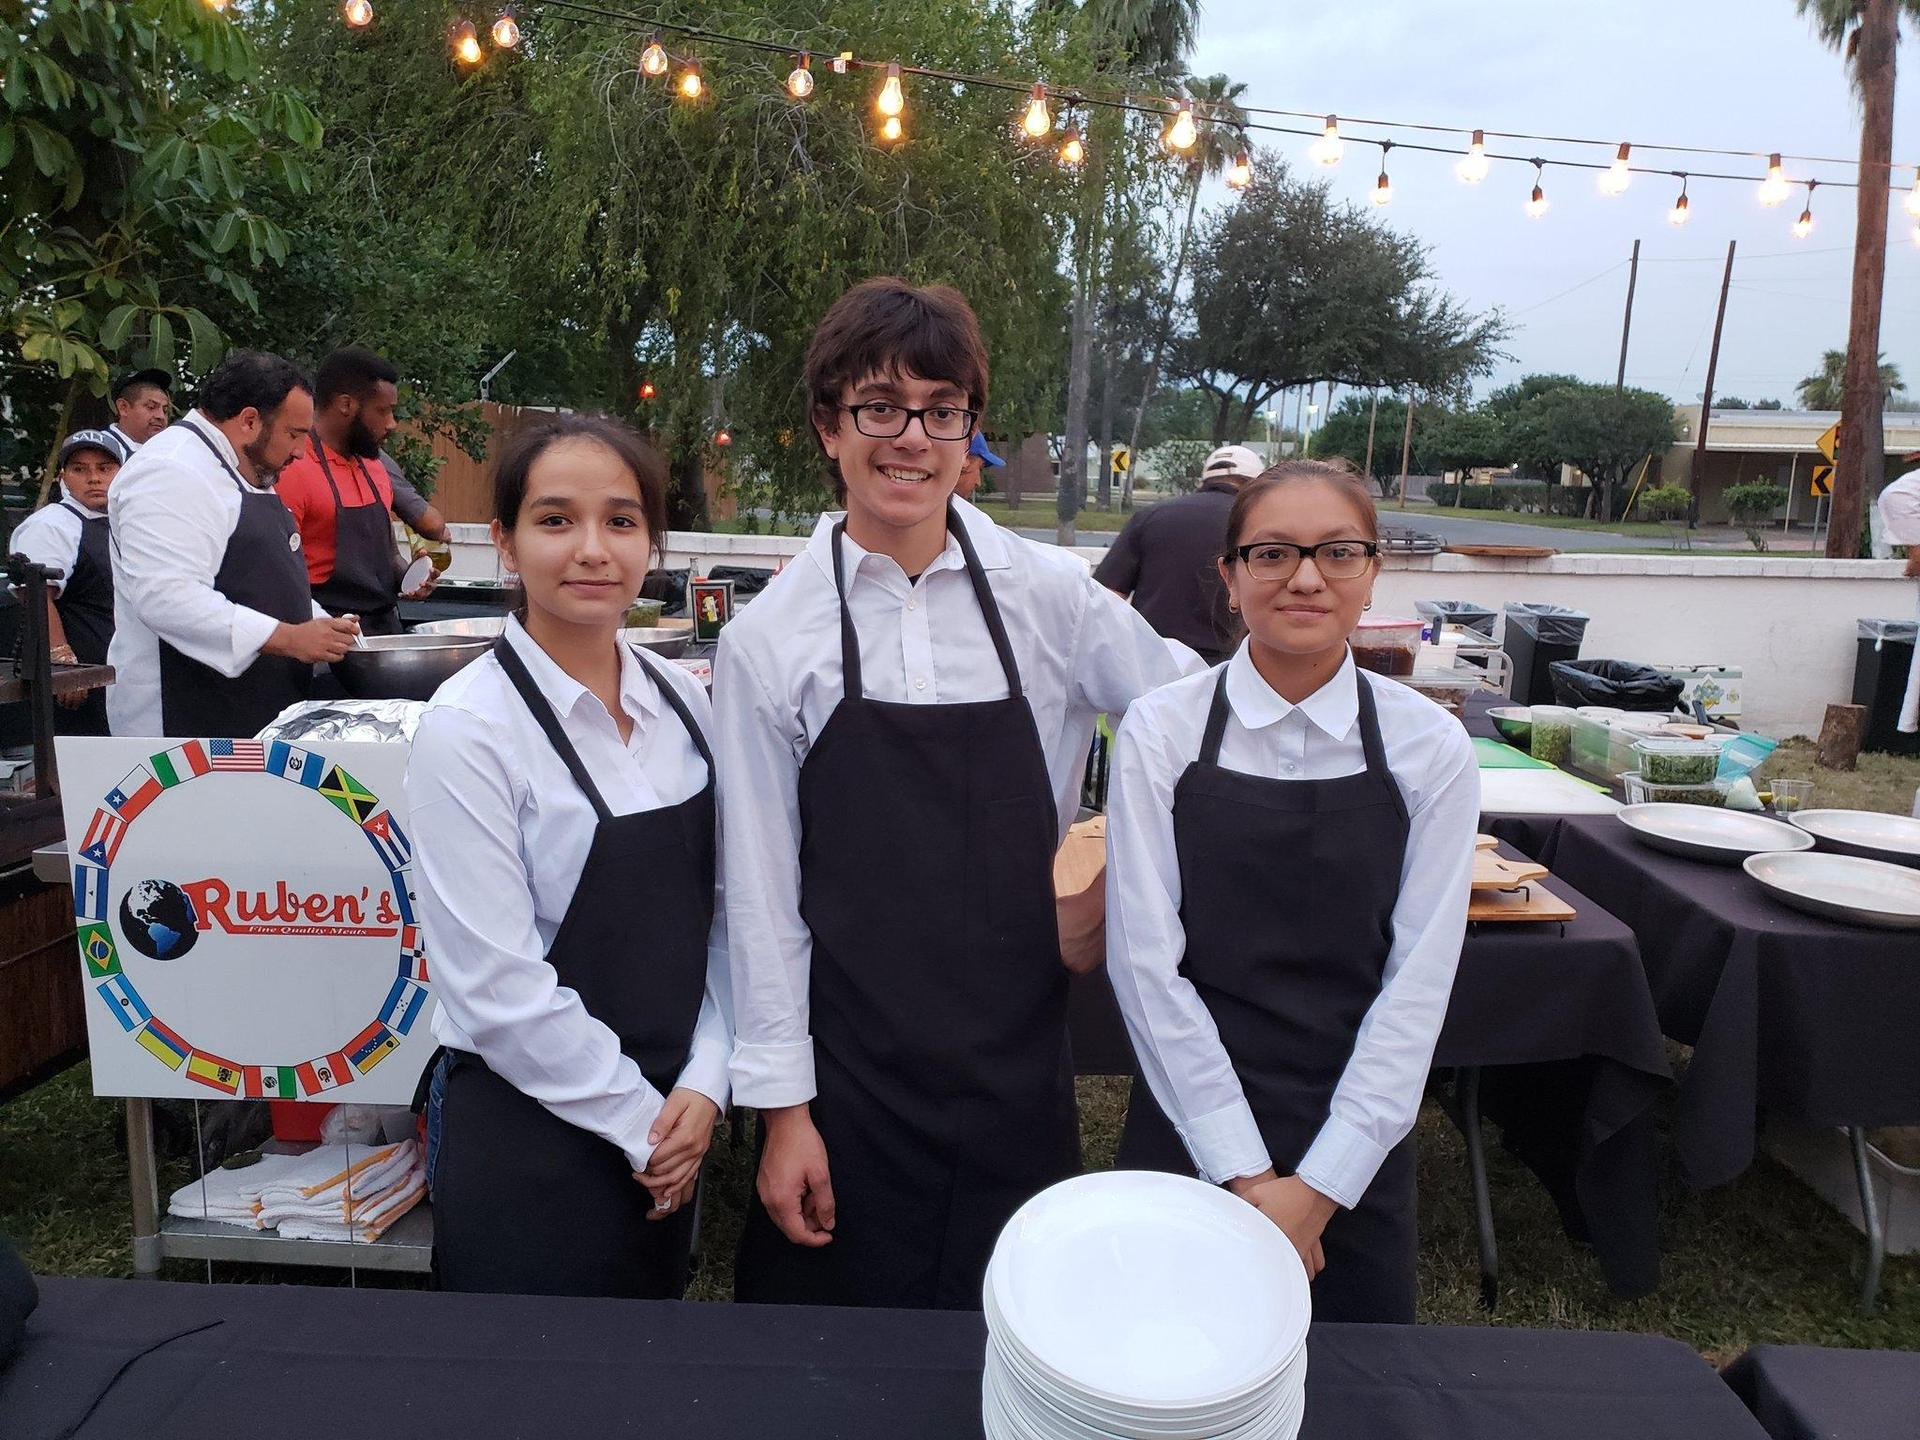 three individuals in cooking aprons posing